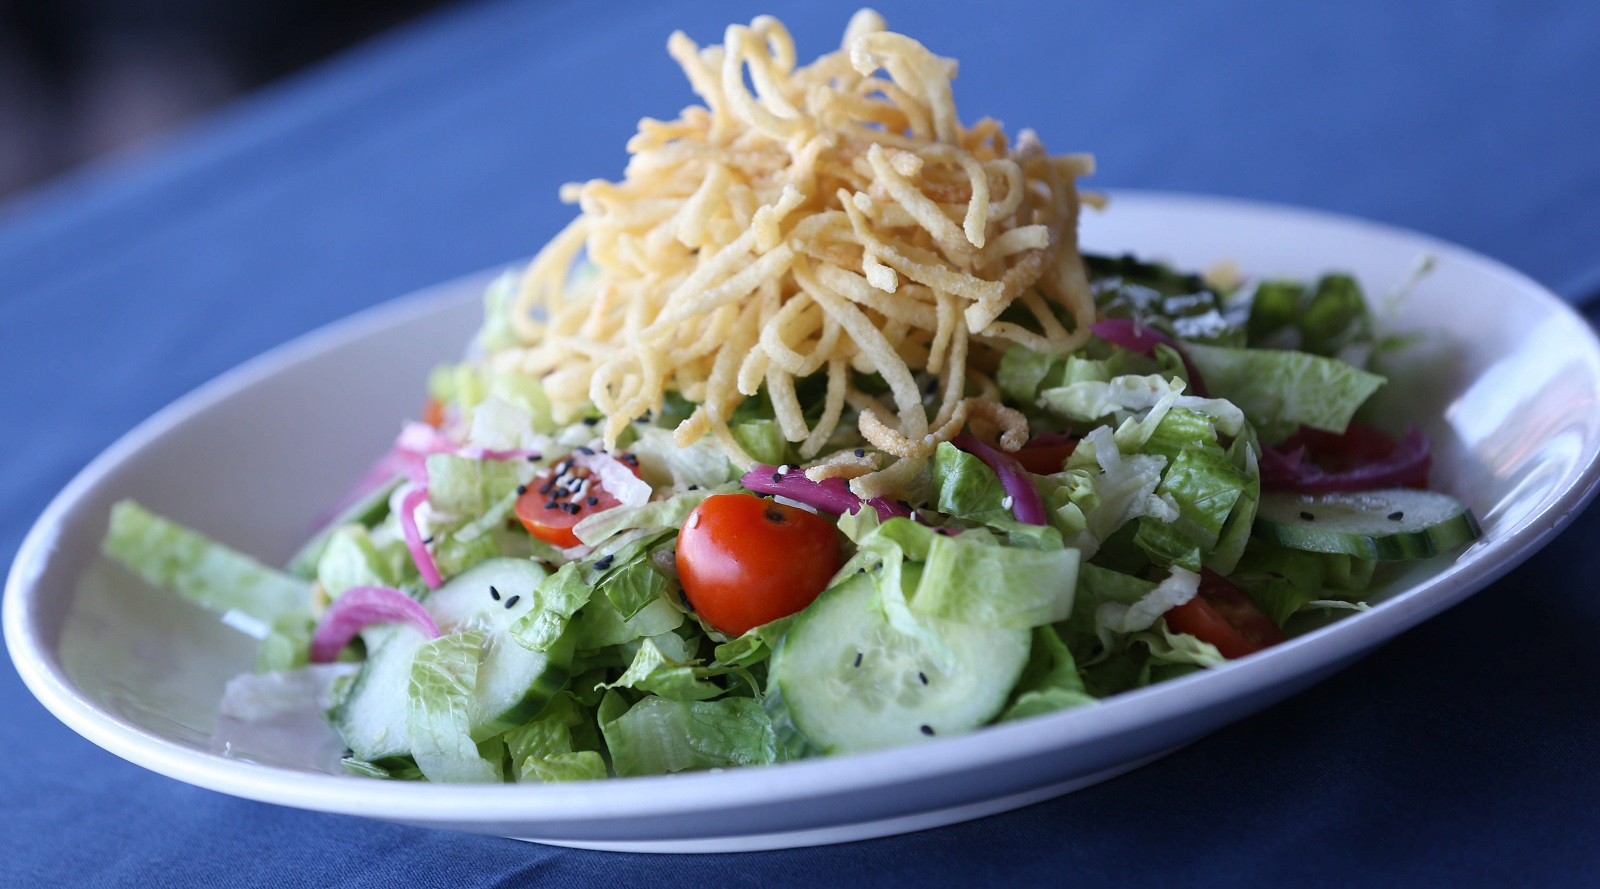 The Asian chopped salad is made with romaine, iceberg, tomato, cucumber, pickled red onion, sesame seeds and fried noodles. (Sharon Cantillon/Buffalo News)